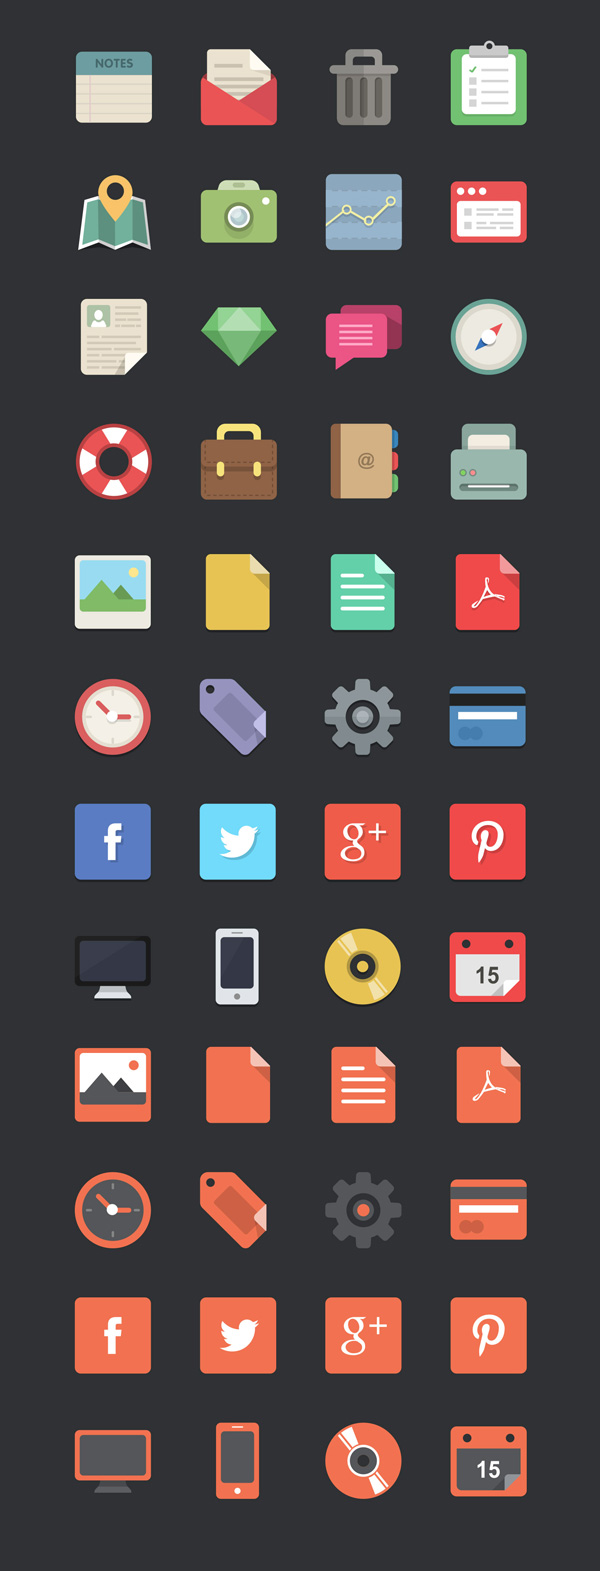 New free website graphics: Free Download: 48 Flat Designer Icons